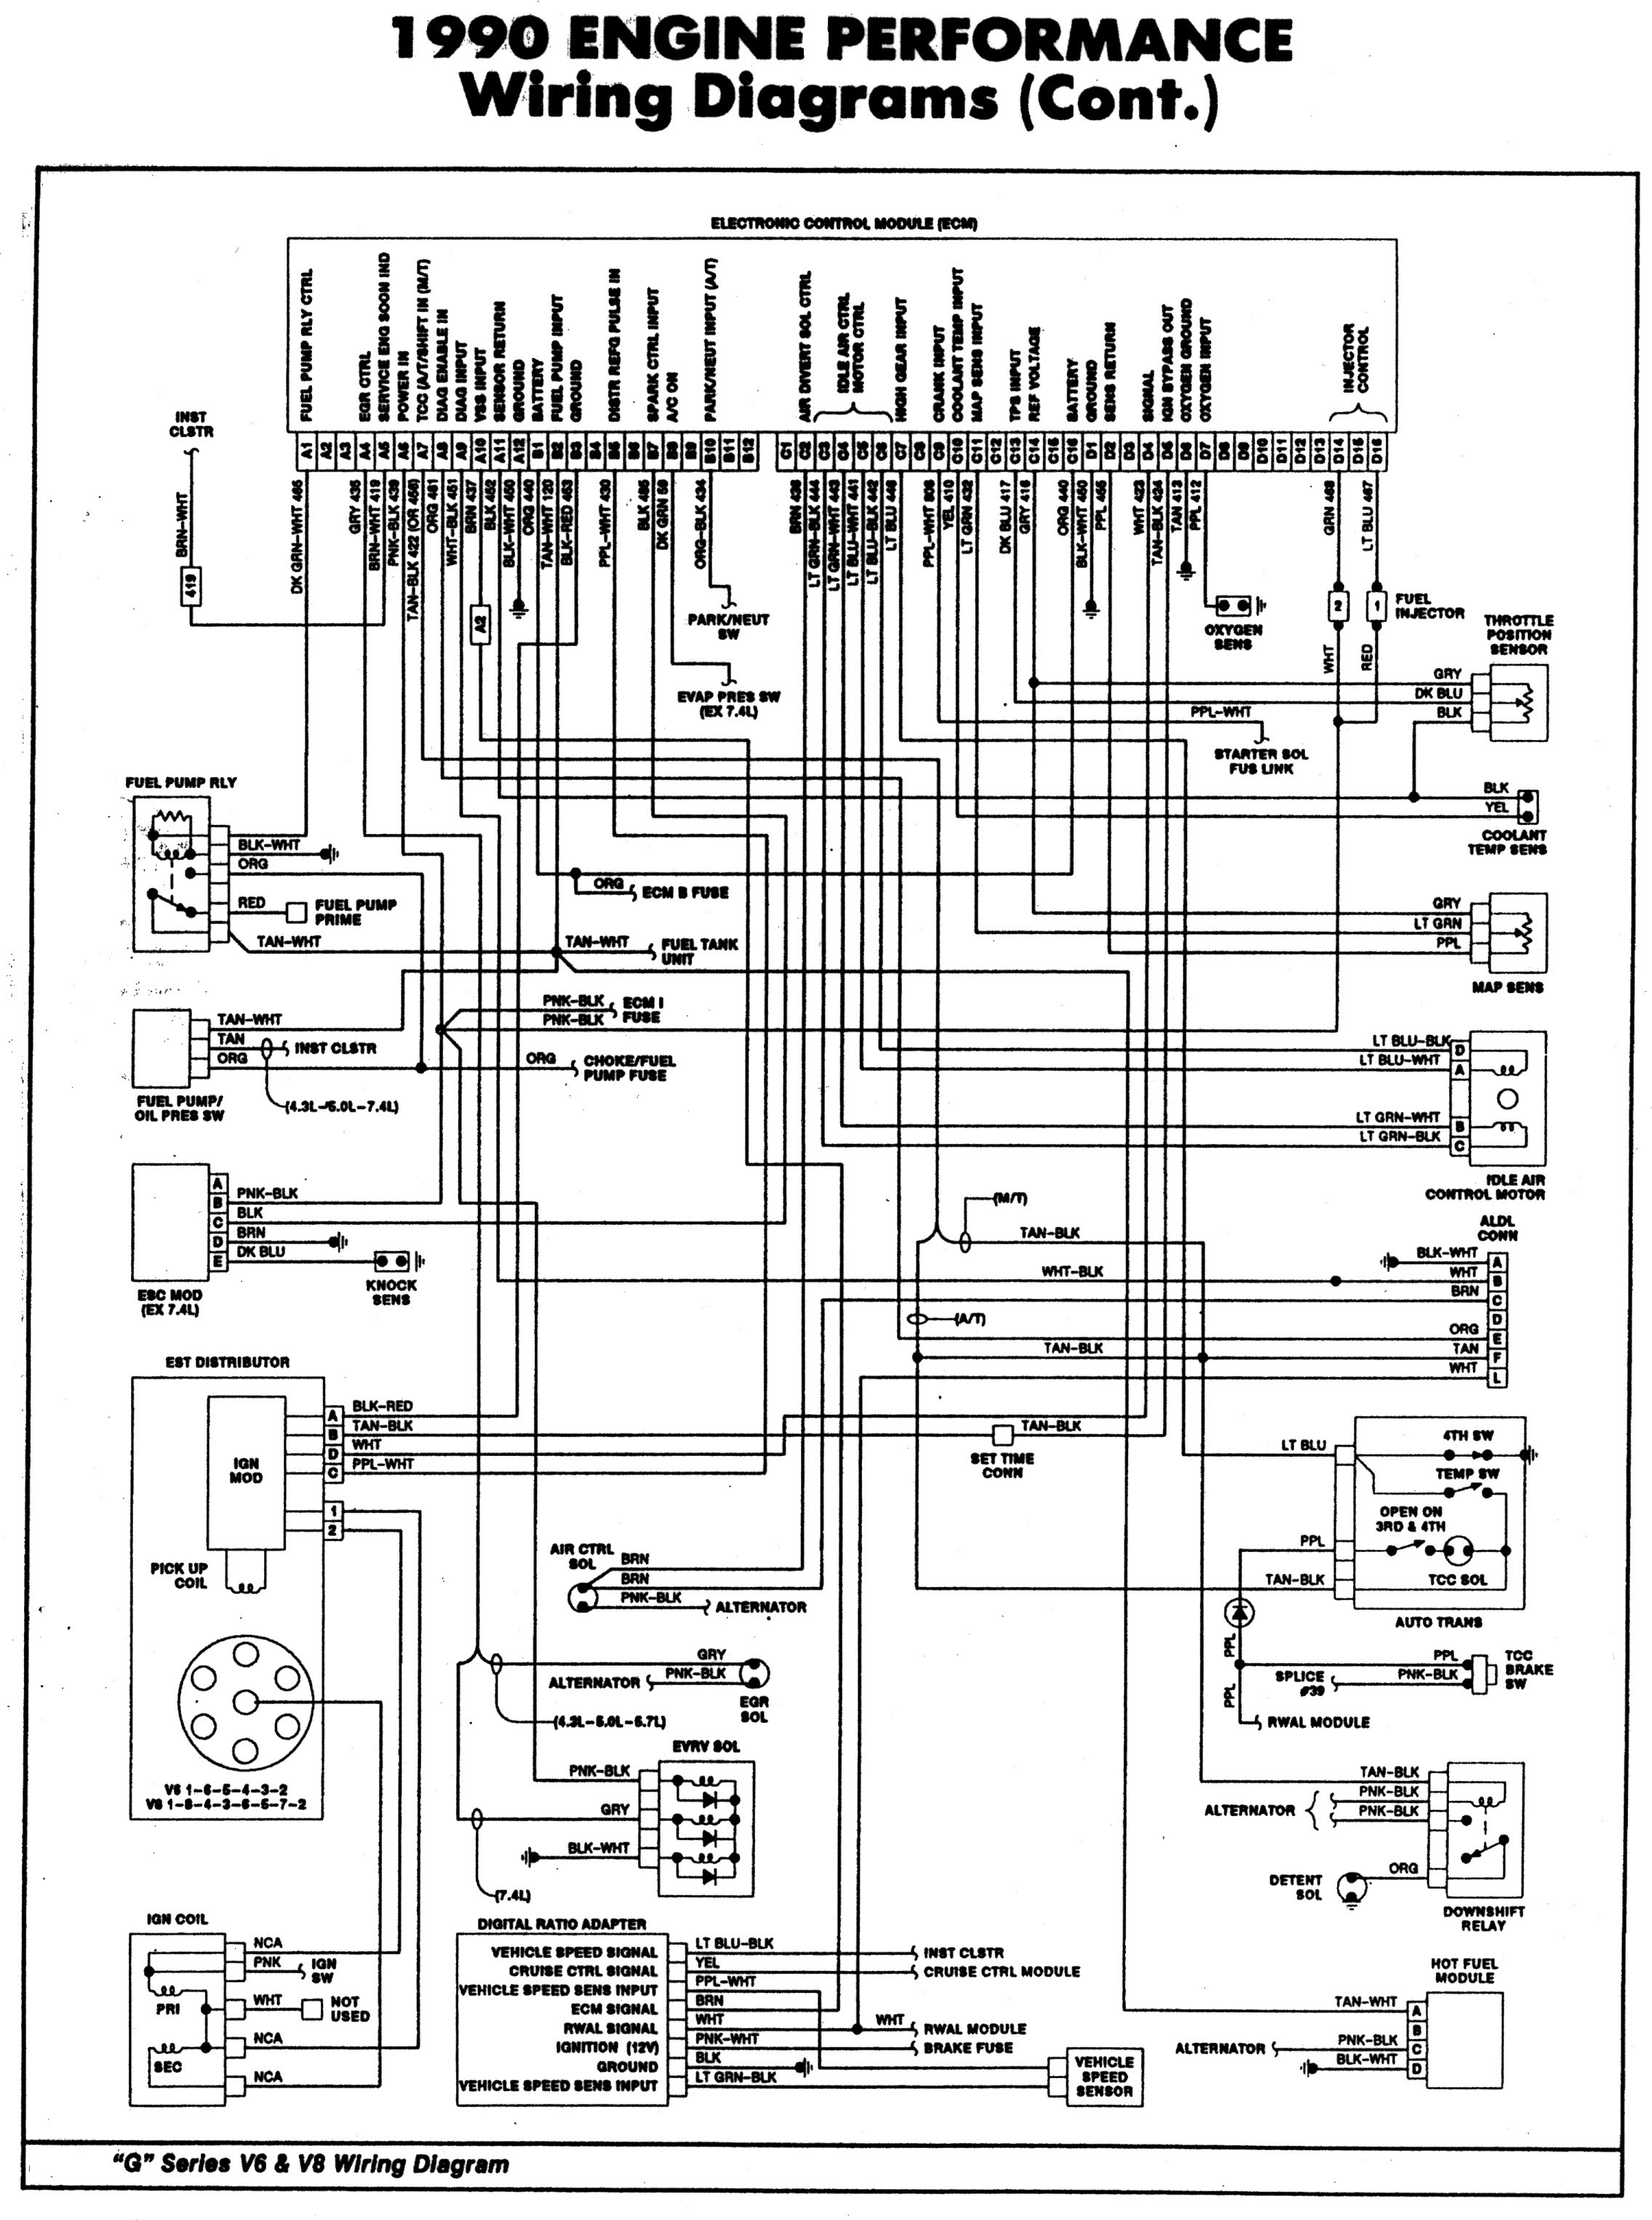 2000 Chevy S10 2 2 Engine Diagram 1998 Chevy S10 2 2 Engine Diagram Of 2000 Chevy S10 2 2 Engine Diagram 1998 Chevy S10 2 2 Engine Diagram